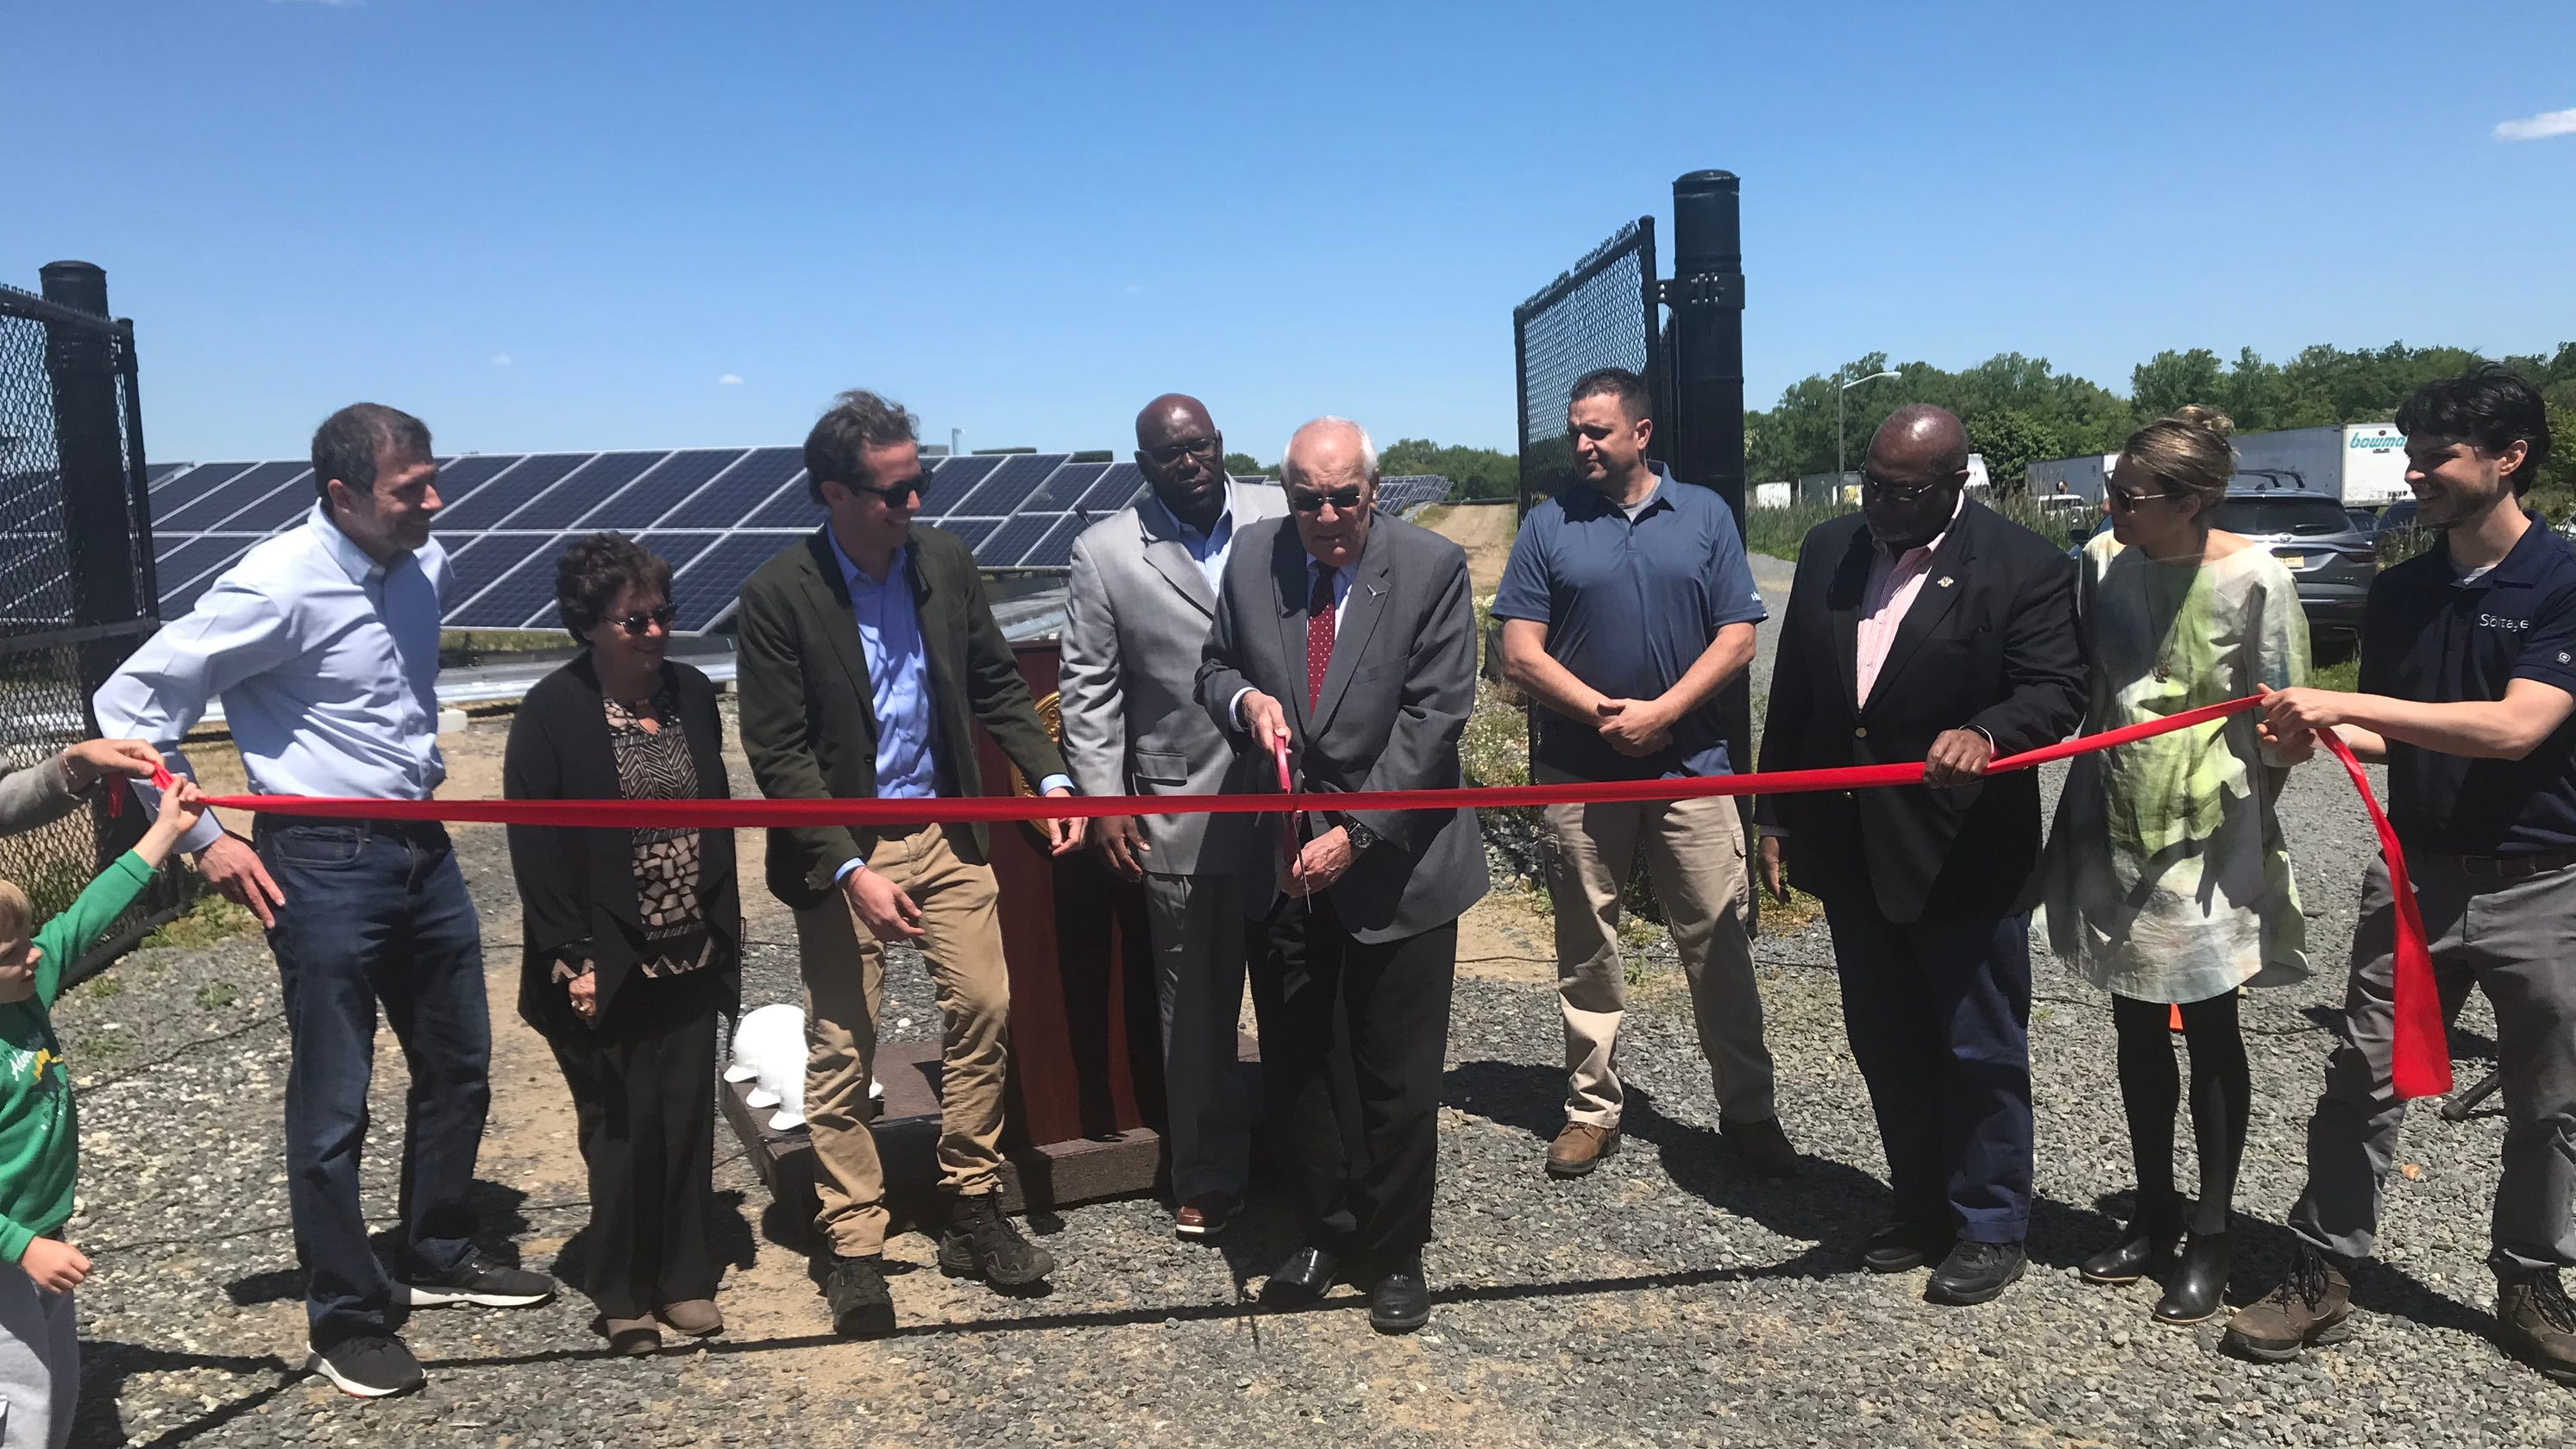 Delanco solar farm will provide clean energy to hundreds in South Jersey